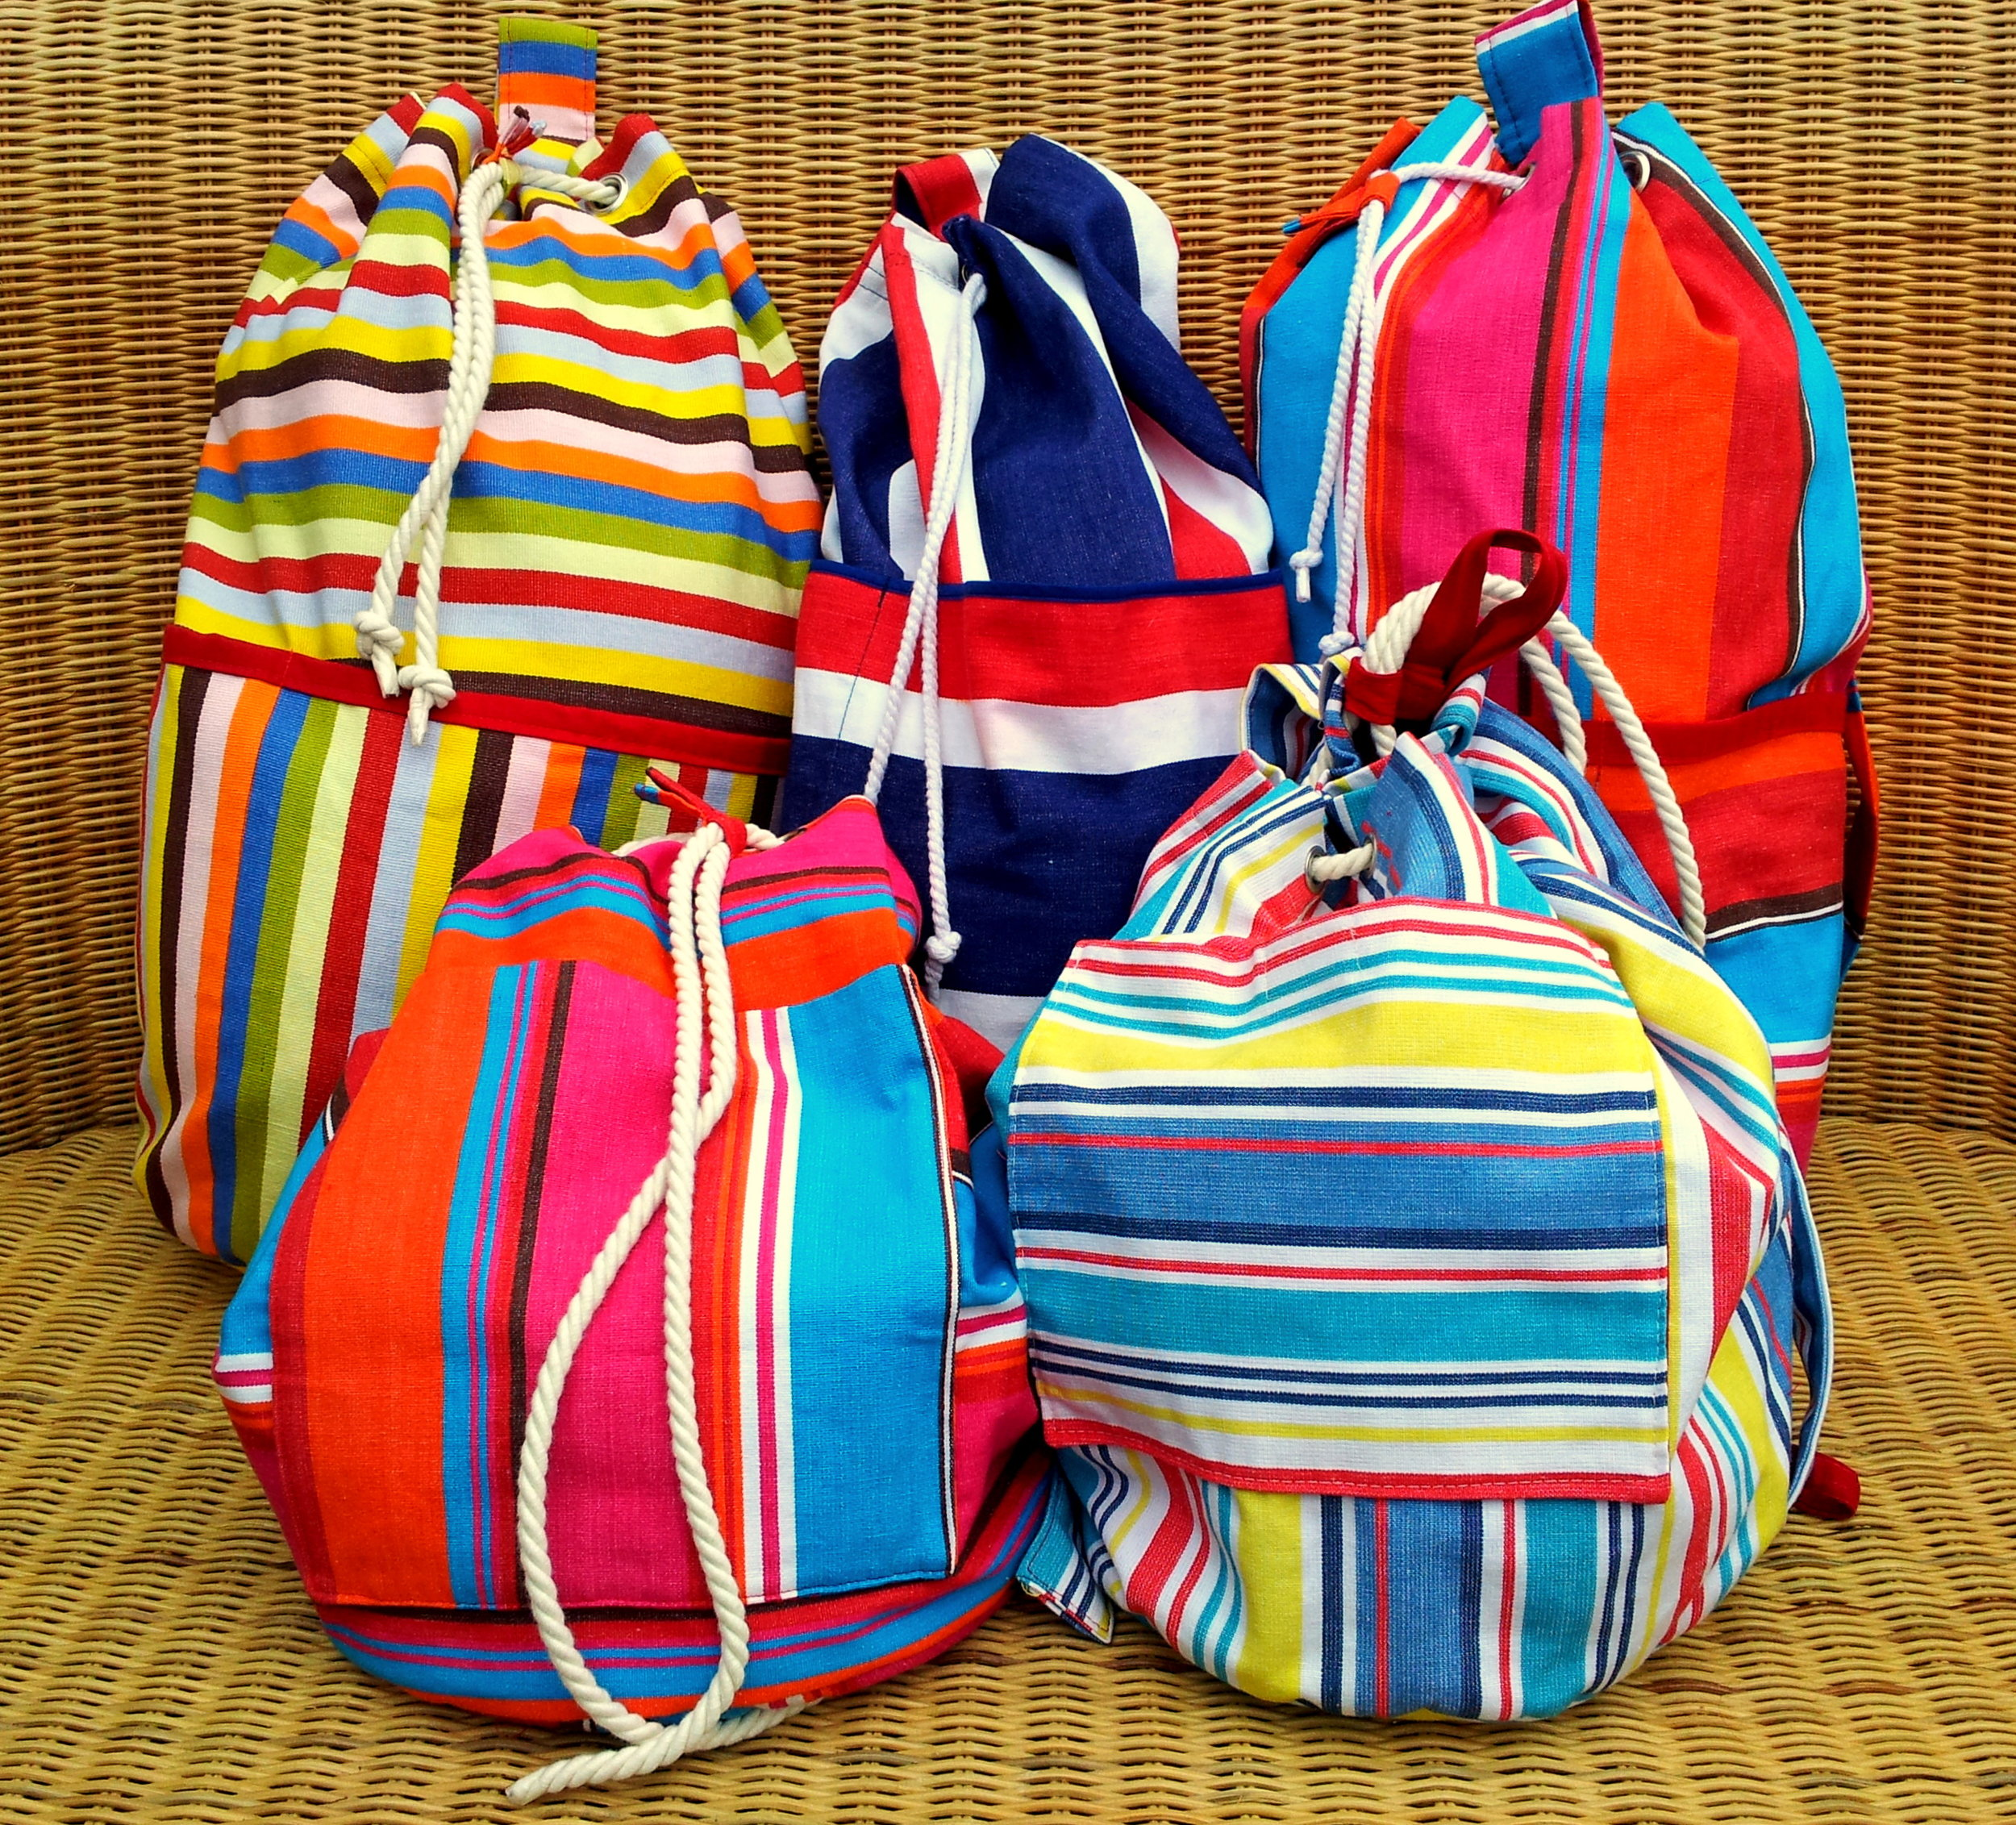 Hazydaze duffle bags are practical and look great. We have two sizes available.